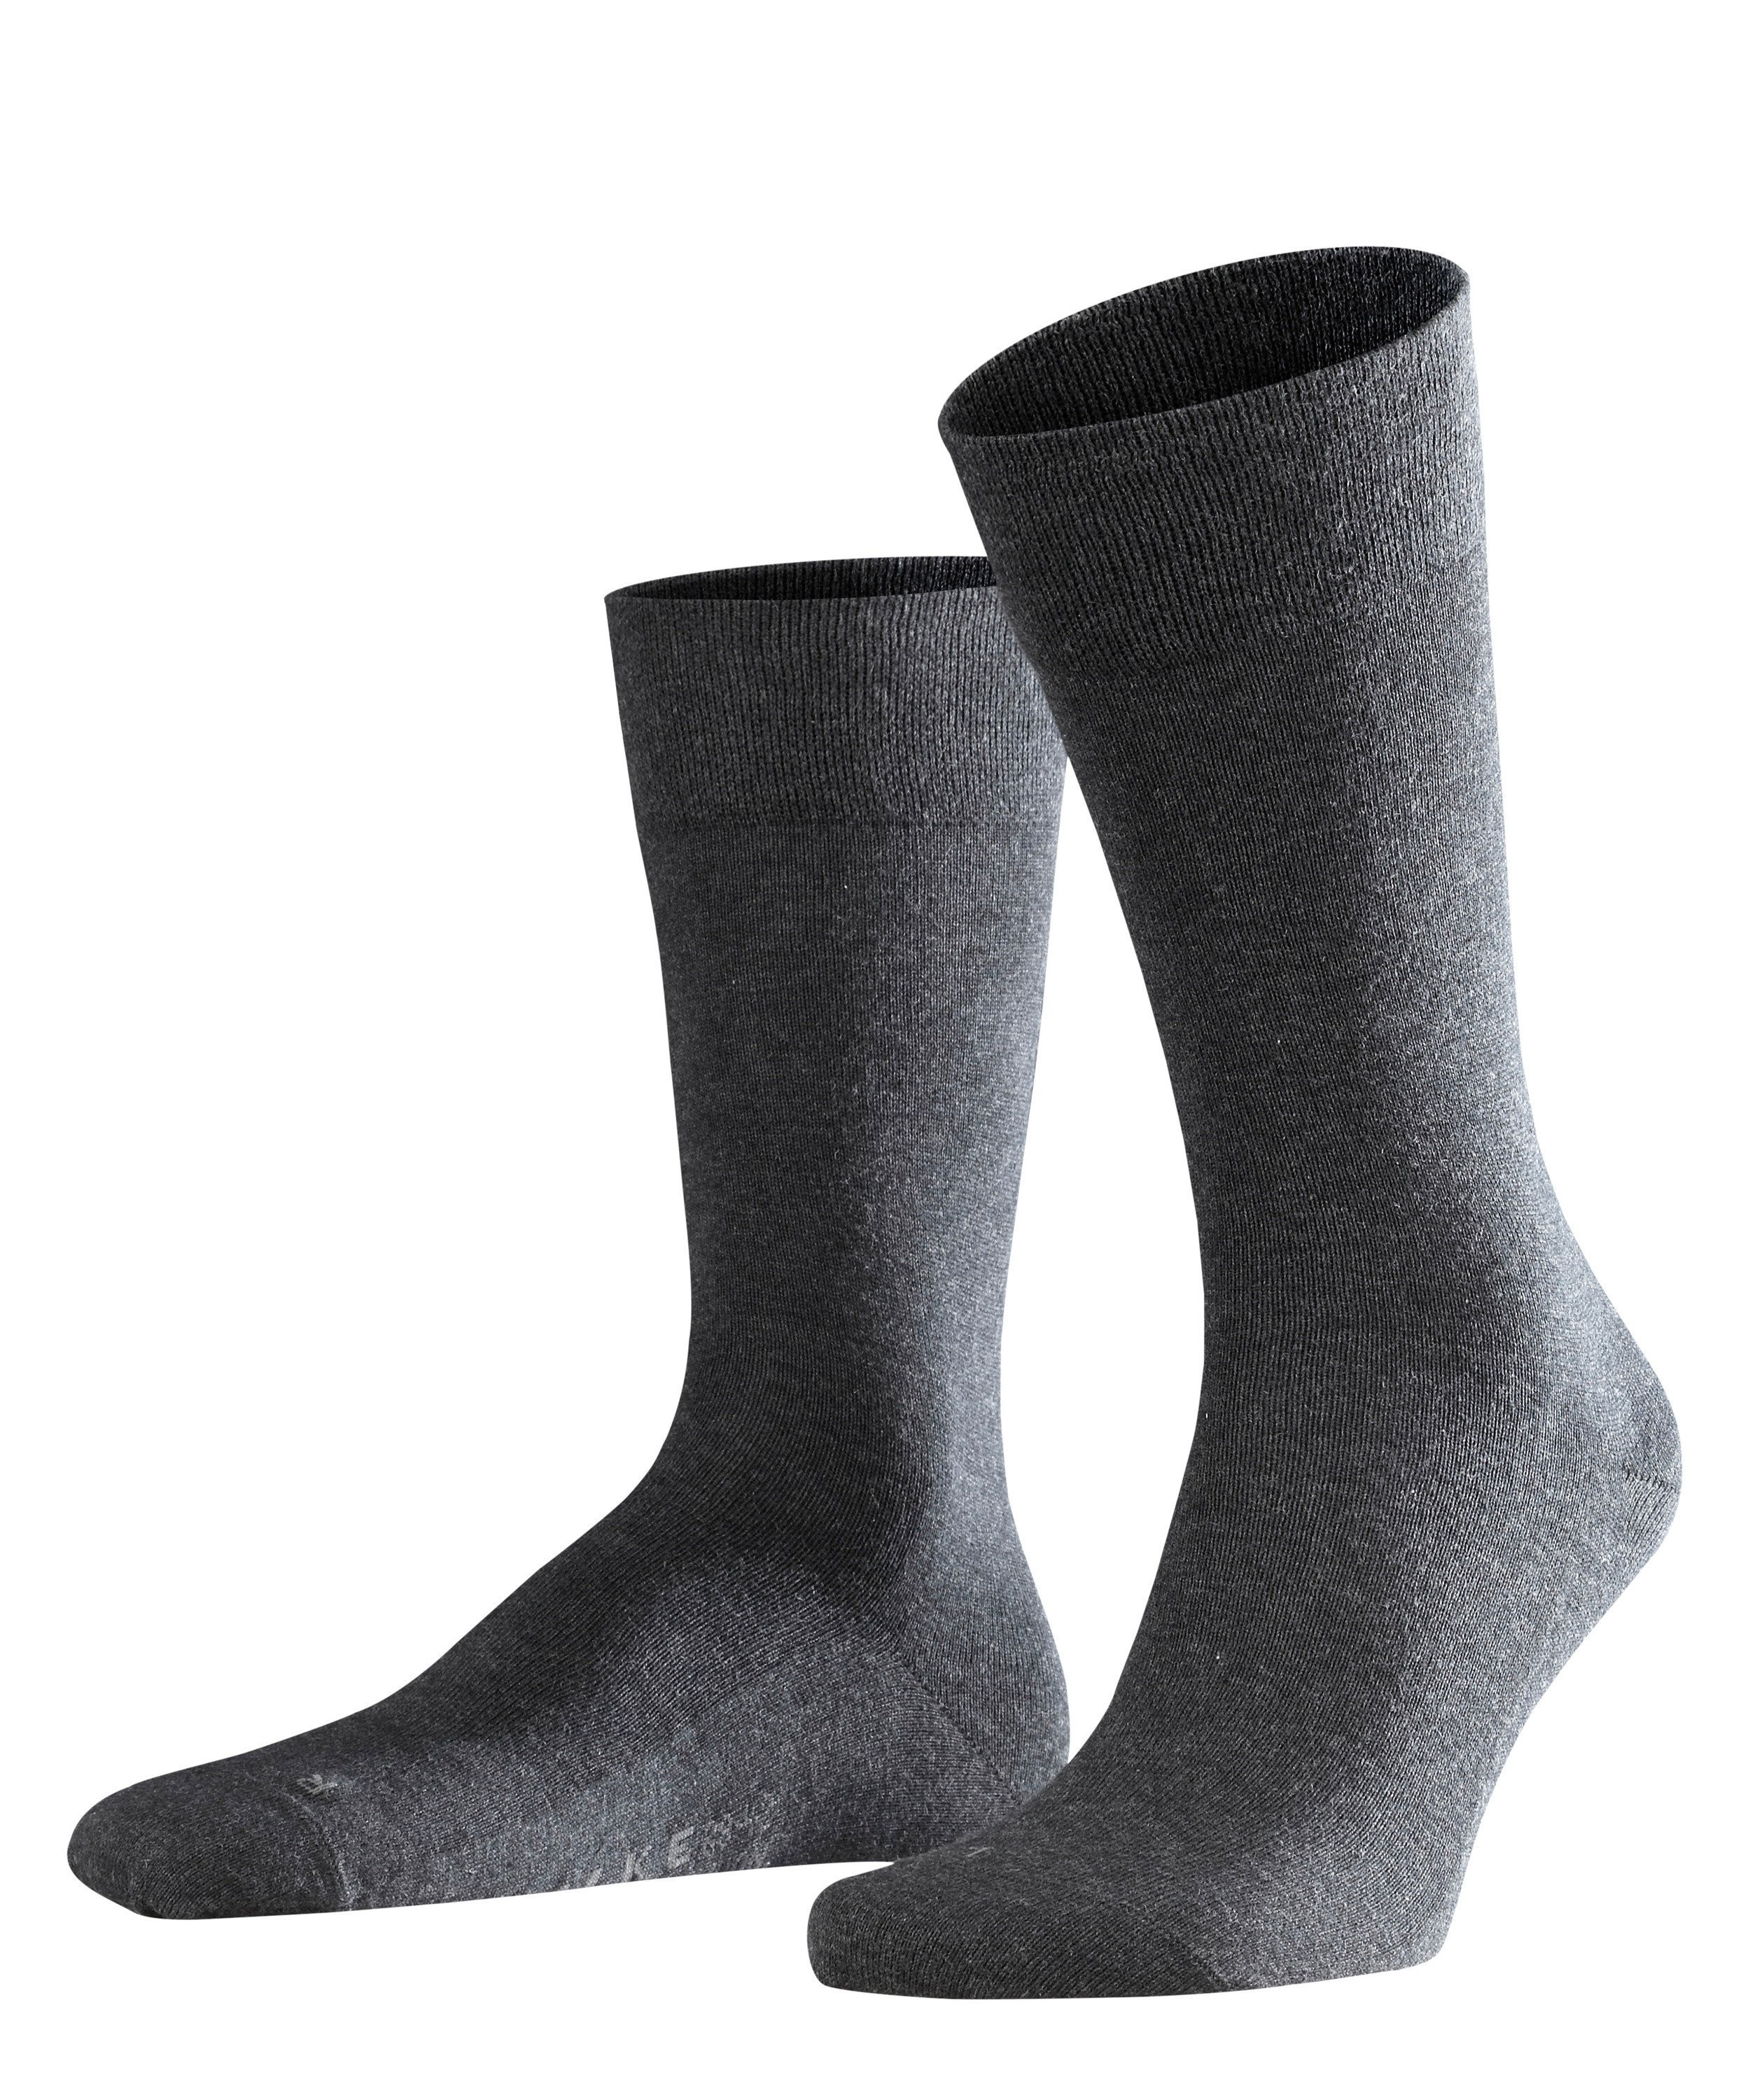 Chaussette Homme Sans Elastiques - 94% Coton - Falke Men Sensitive London 14616 Gris Anthracite Mel 3080